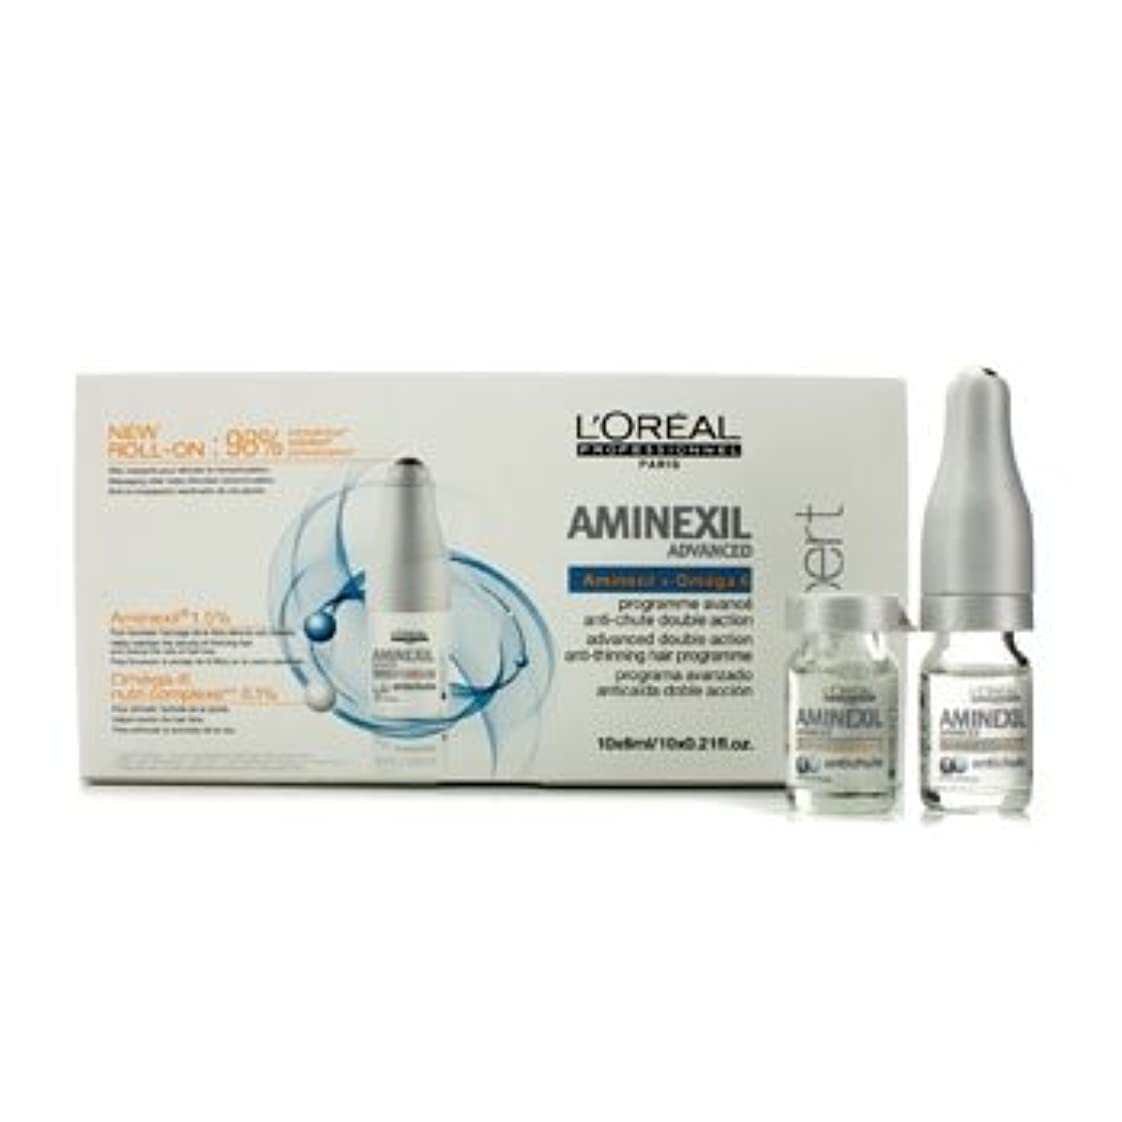 極貧ベンチサイトラインロレアル Professionnel Expert Serie - Aminexil Advanced Anti-Thinning Hair Programme 10x6ml [並行輸入品][海外直送品]